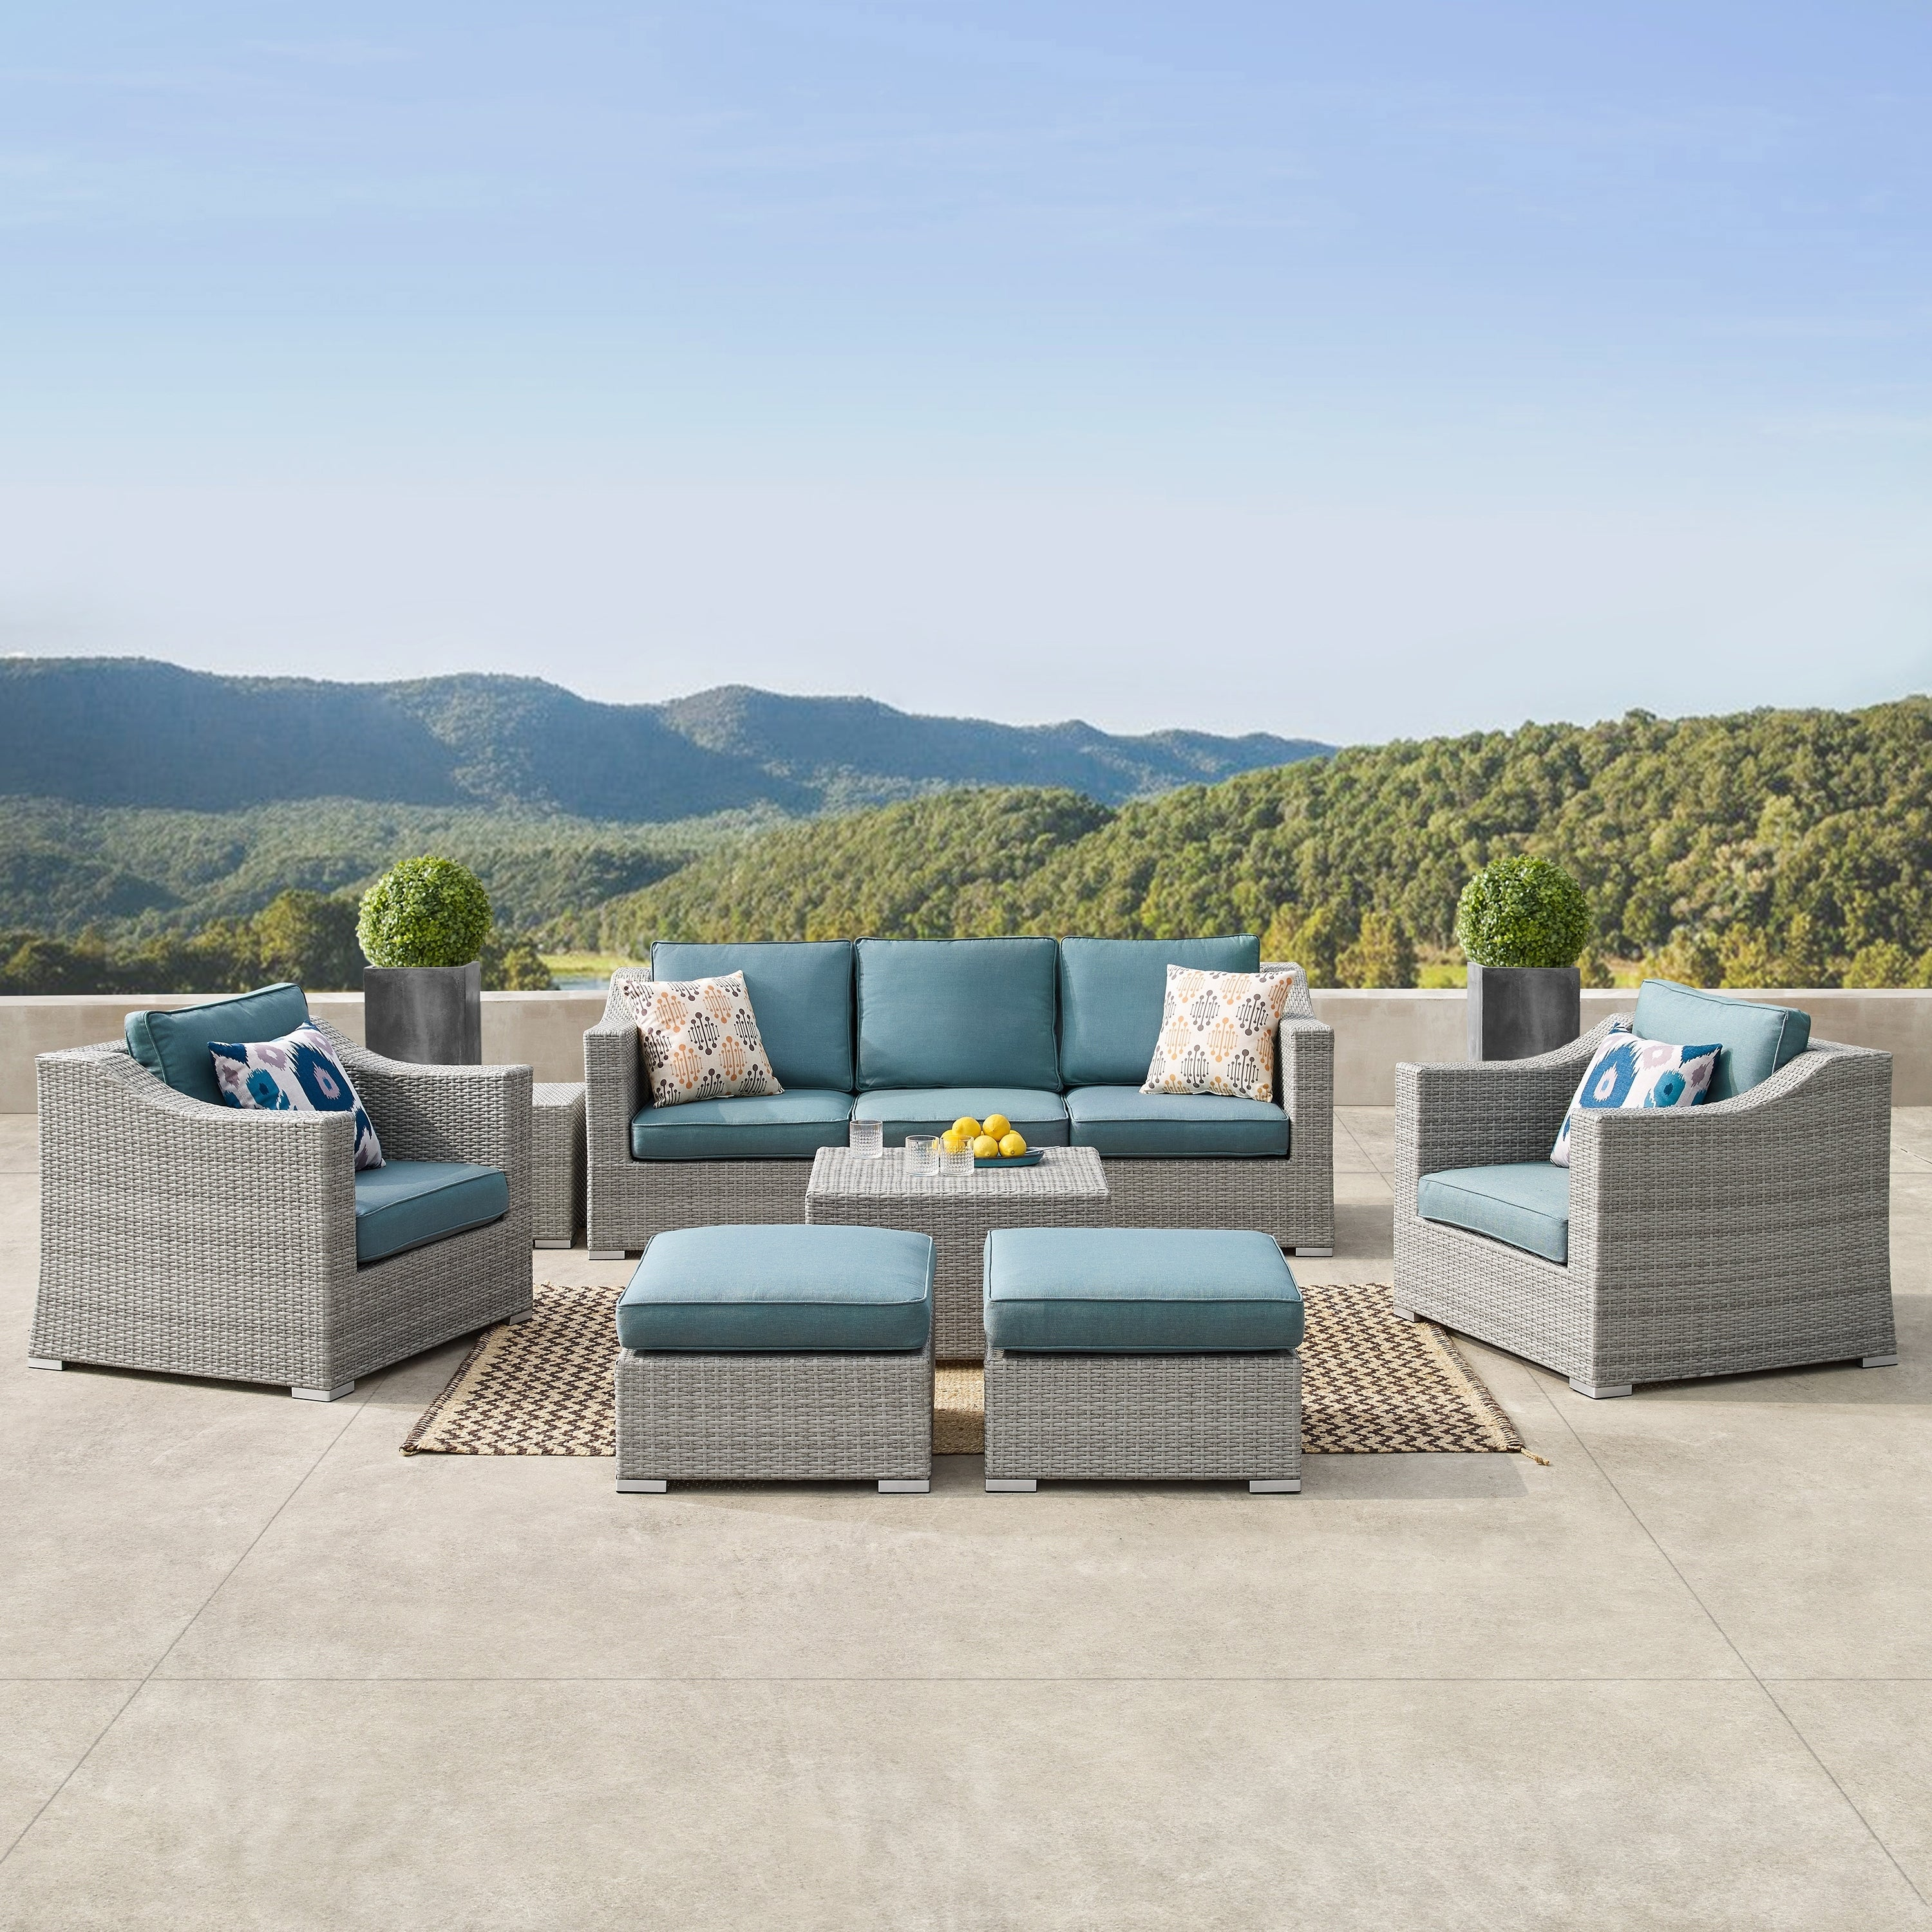 Blue Patio Furniture Sets.Corvus Martinka 9 Piece Grey Wicker Patio Furniture Set With Cushions